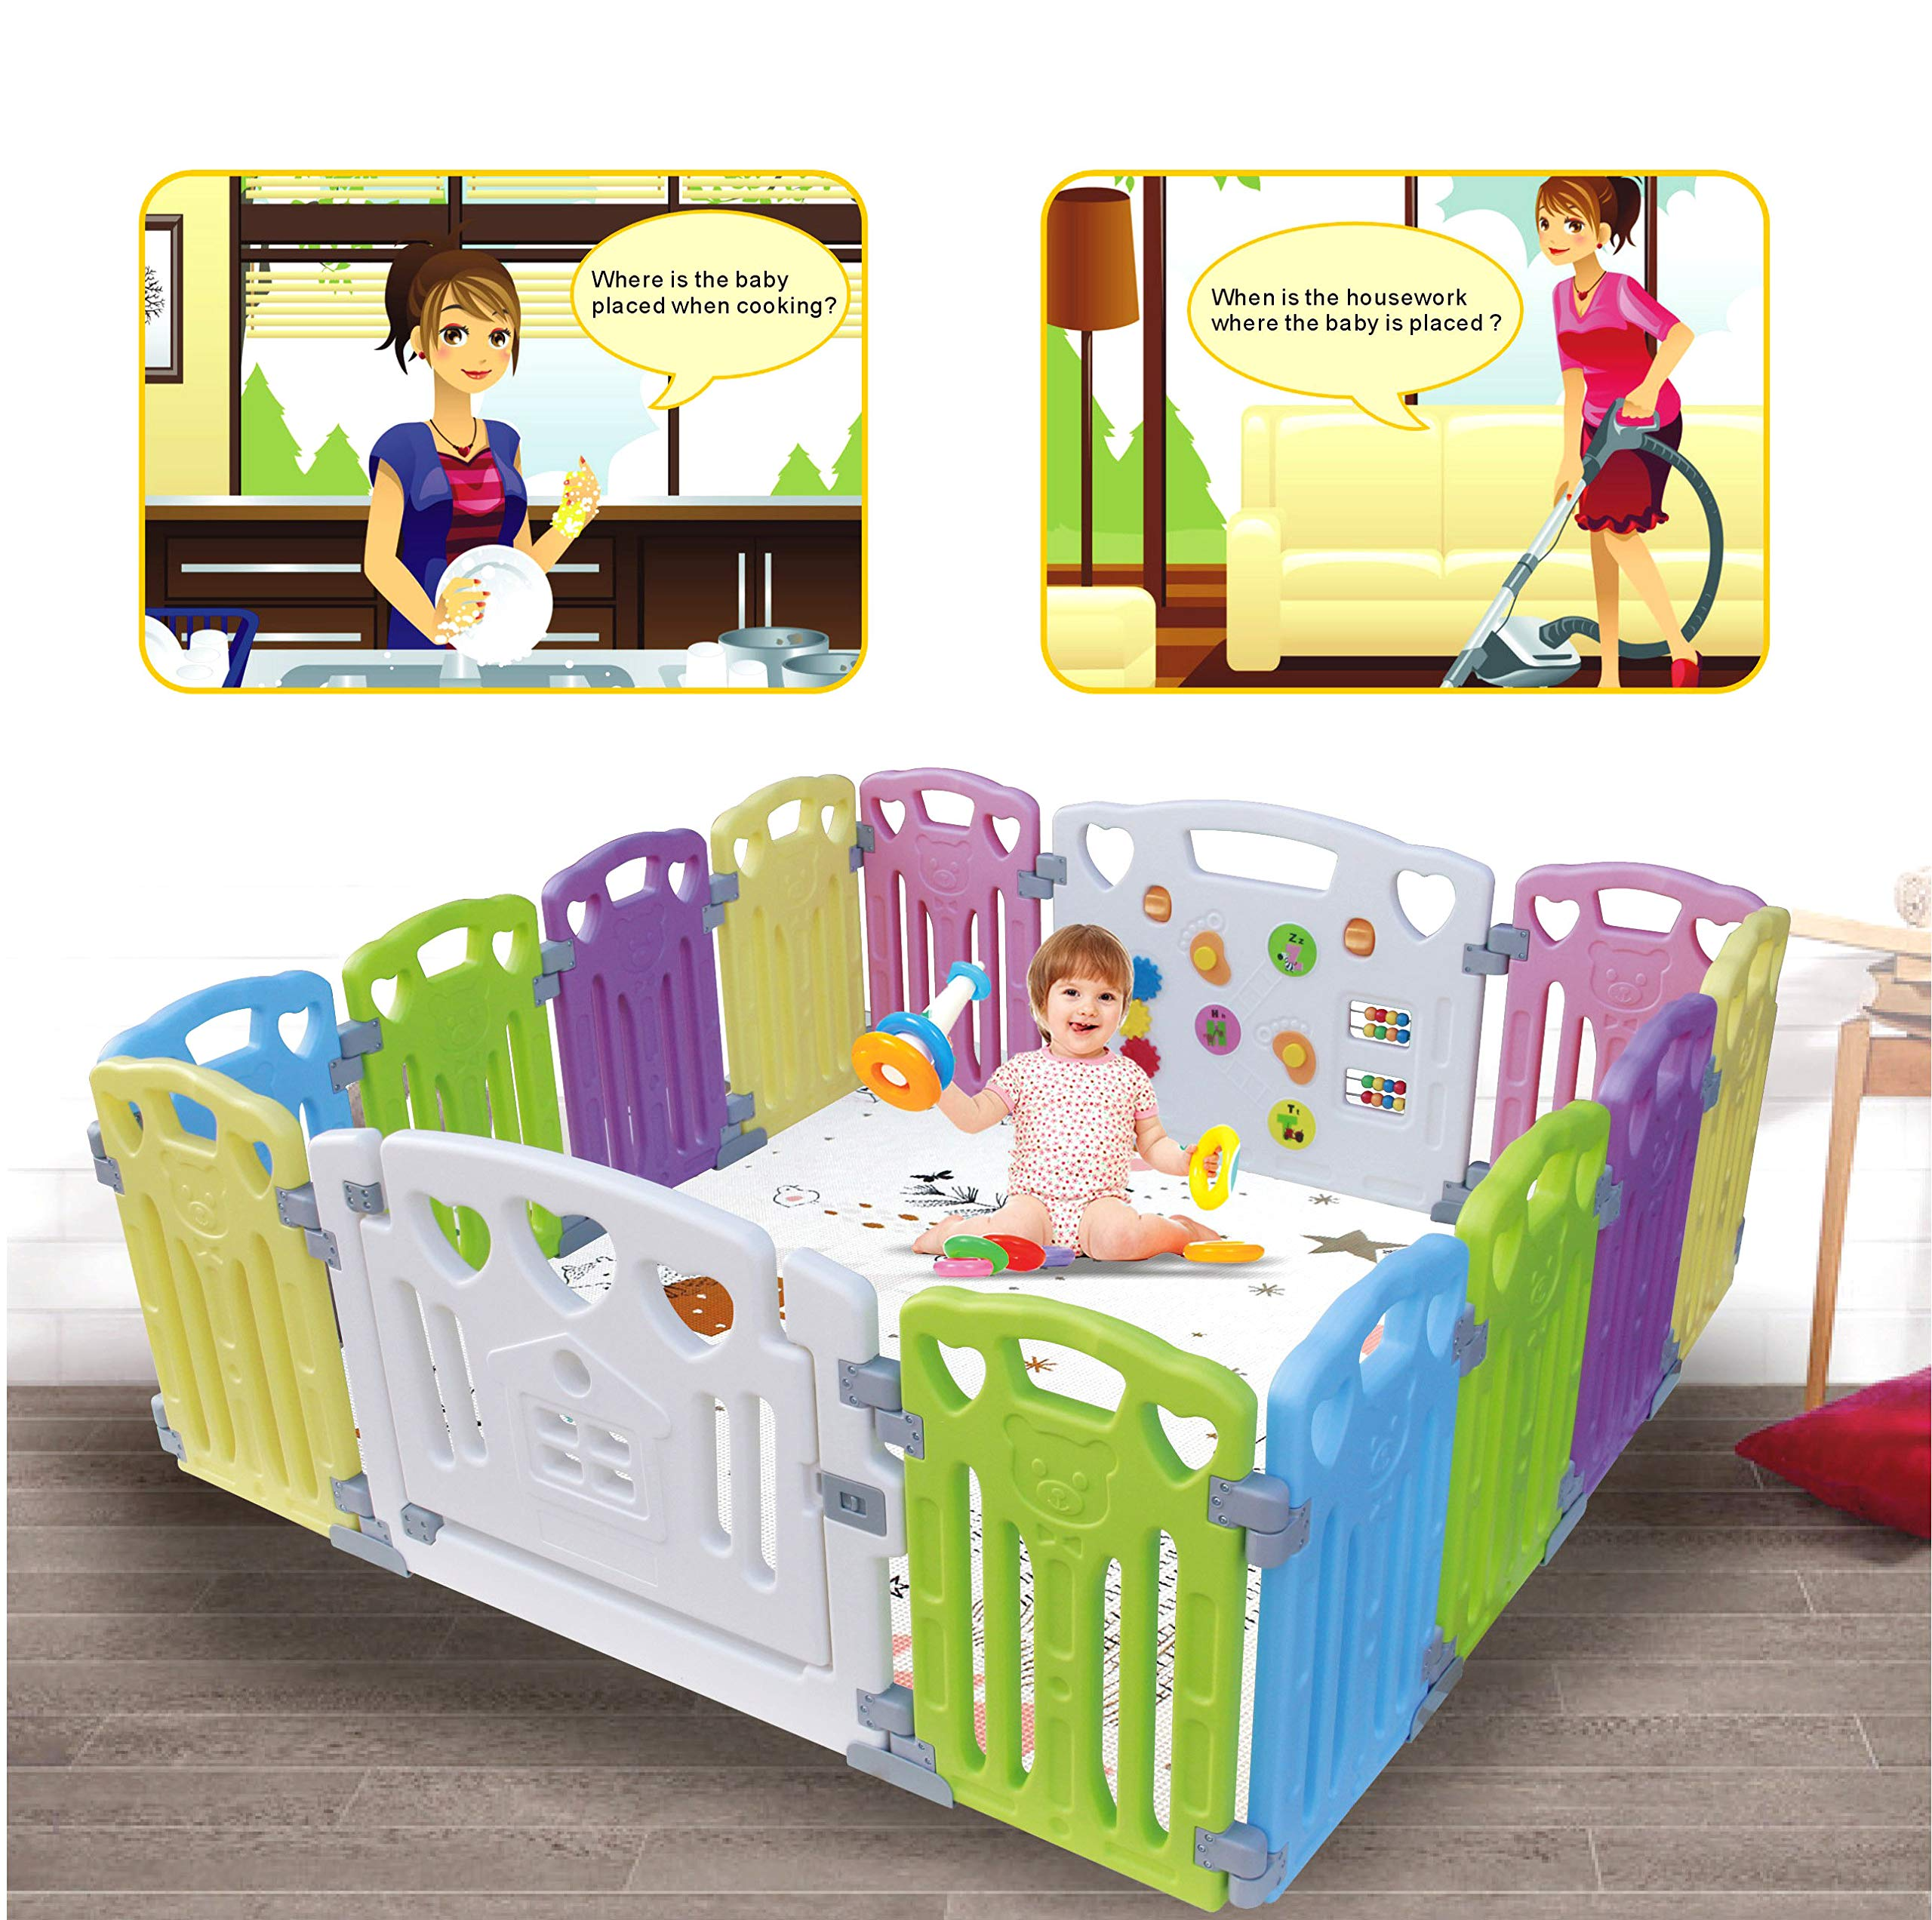 Baby Playpen Kids Activity Centre Safety Play Yard Home Indoor Outdoor New Pen (Multicolour, Classic Set 14 Panel) (Multicolour 14 Panel) Gupamiga MOM'S LIFESAVER: Keep baby safe in there play centre when mom/dad needs to cook, clean up, go to the bathroom, etc. STURDY HOLDING: Specially designed rubber feet underneath of the yard so the parts don't go sliding around. COVERS A LARGE AREA: It is a great amount of space for baby to learn walk and even laying with baby in it for play time. 1